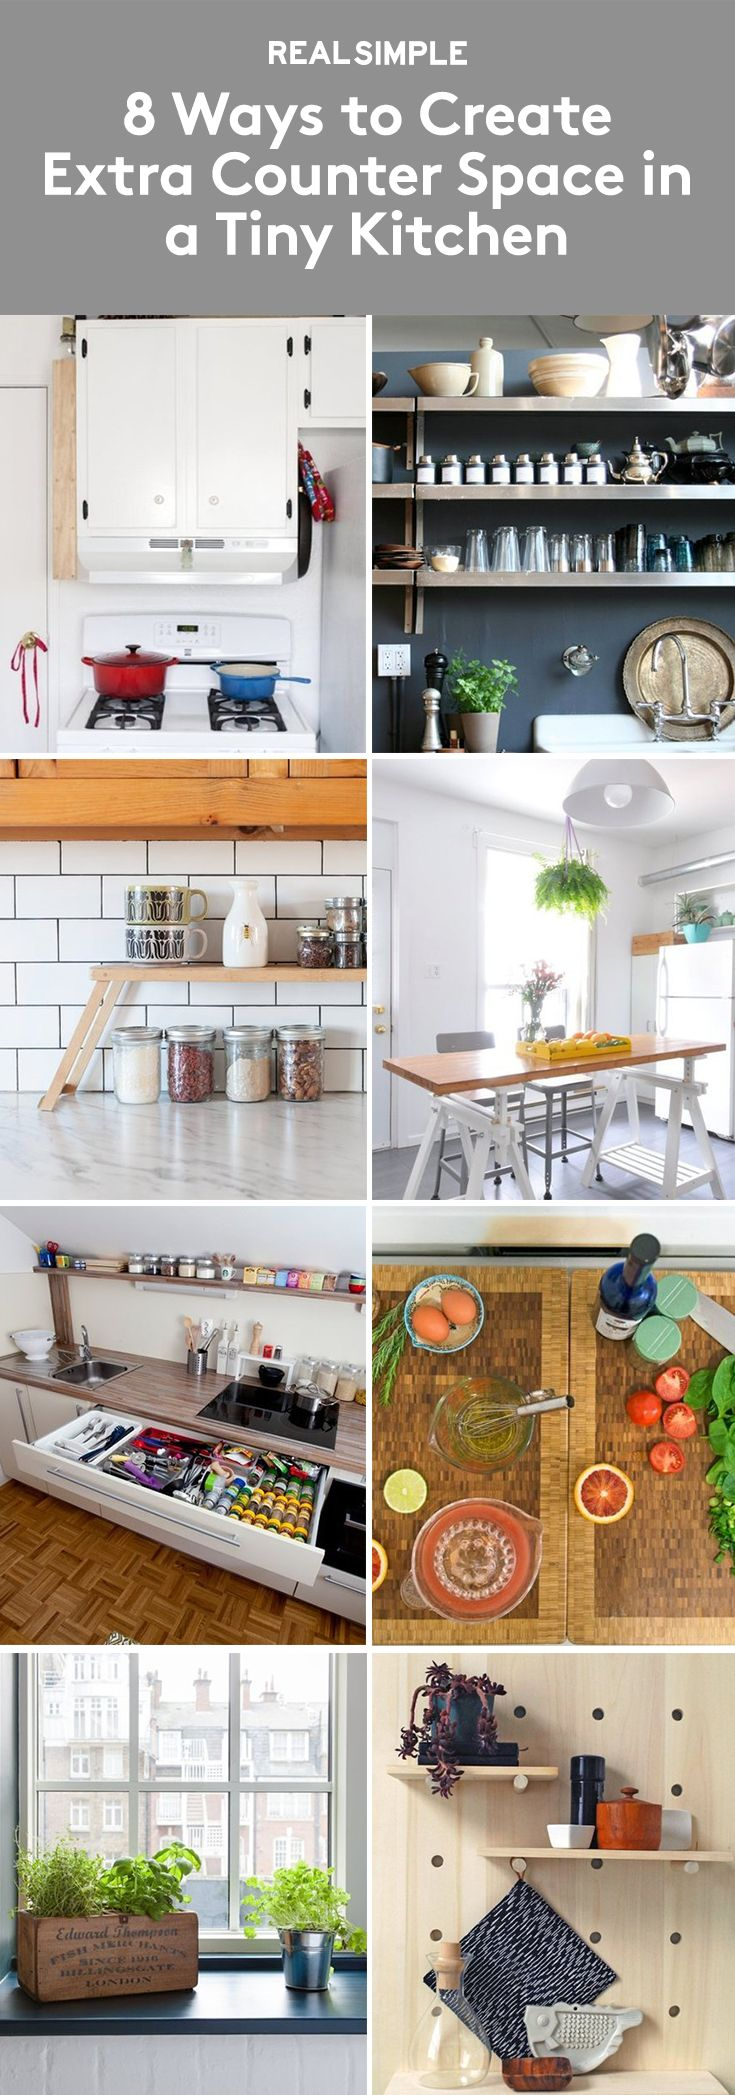 8 ways to create extra counter space in a tiny kitchen shelves home and stove - Small kitchen no counter space model ...